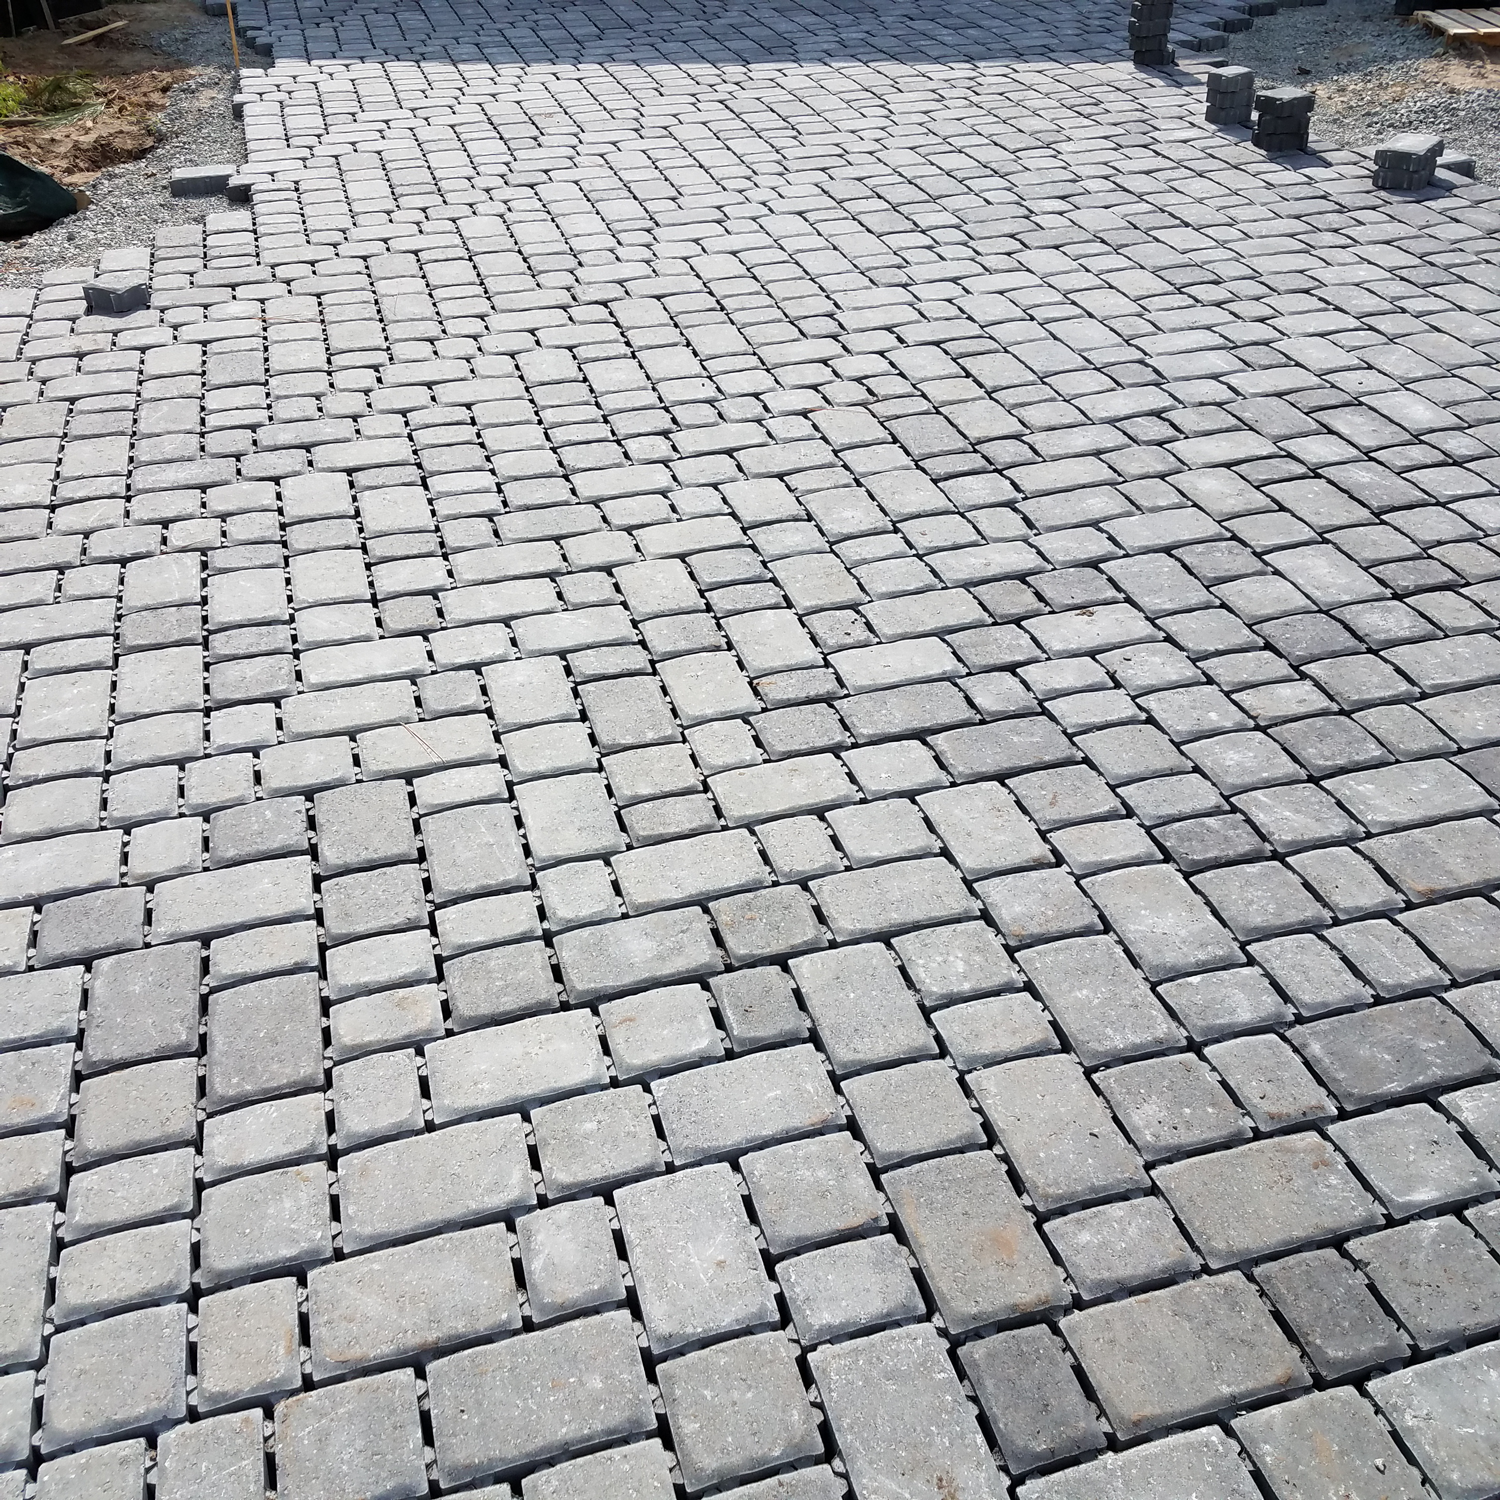 Permeable pavers come in all different sizes, styles, shapes, and colors; come talk to us to find the one that works for you!